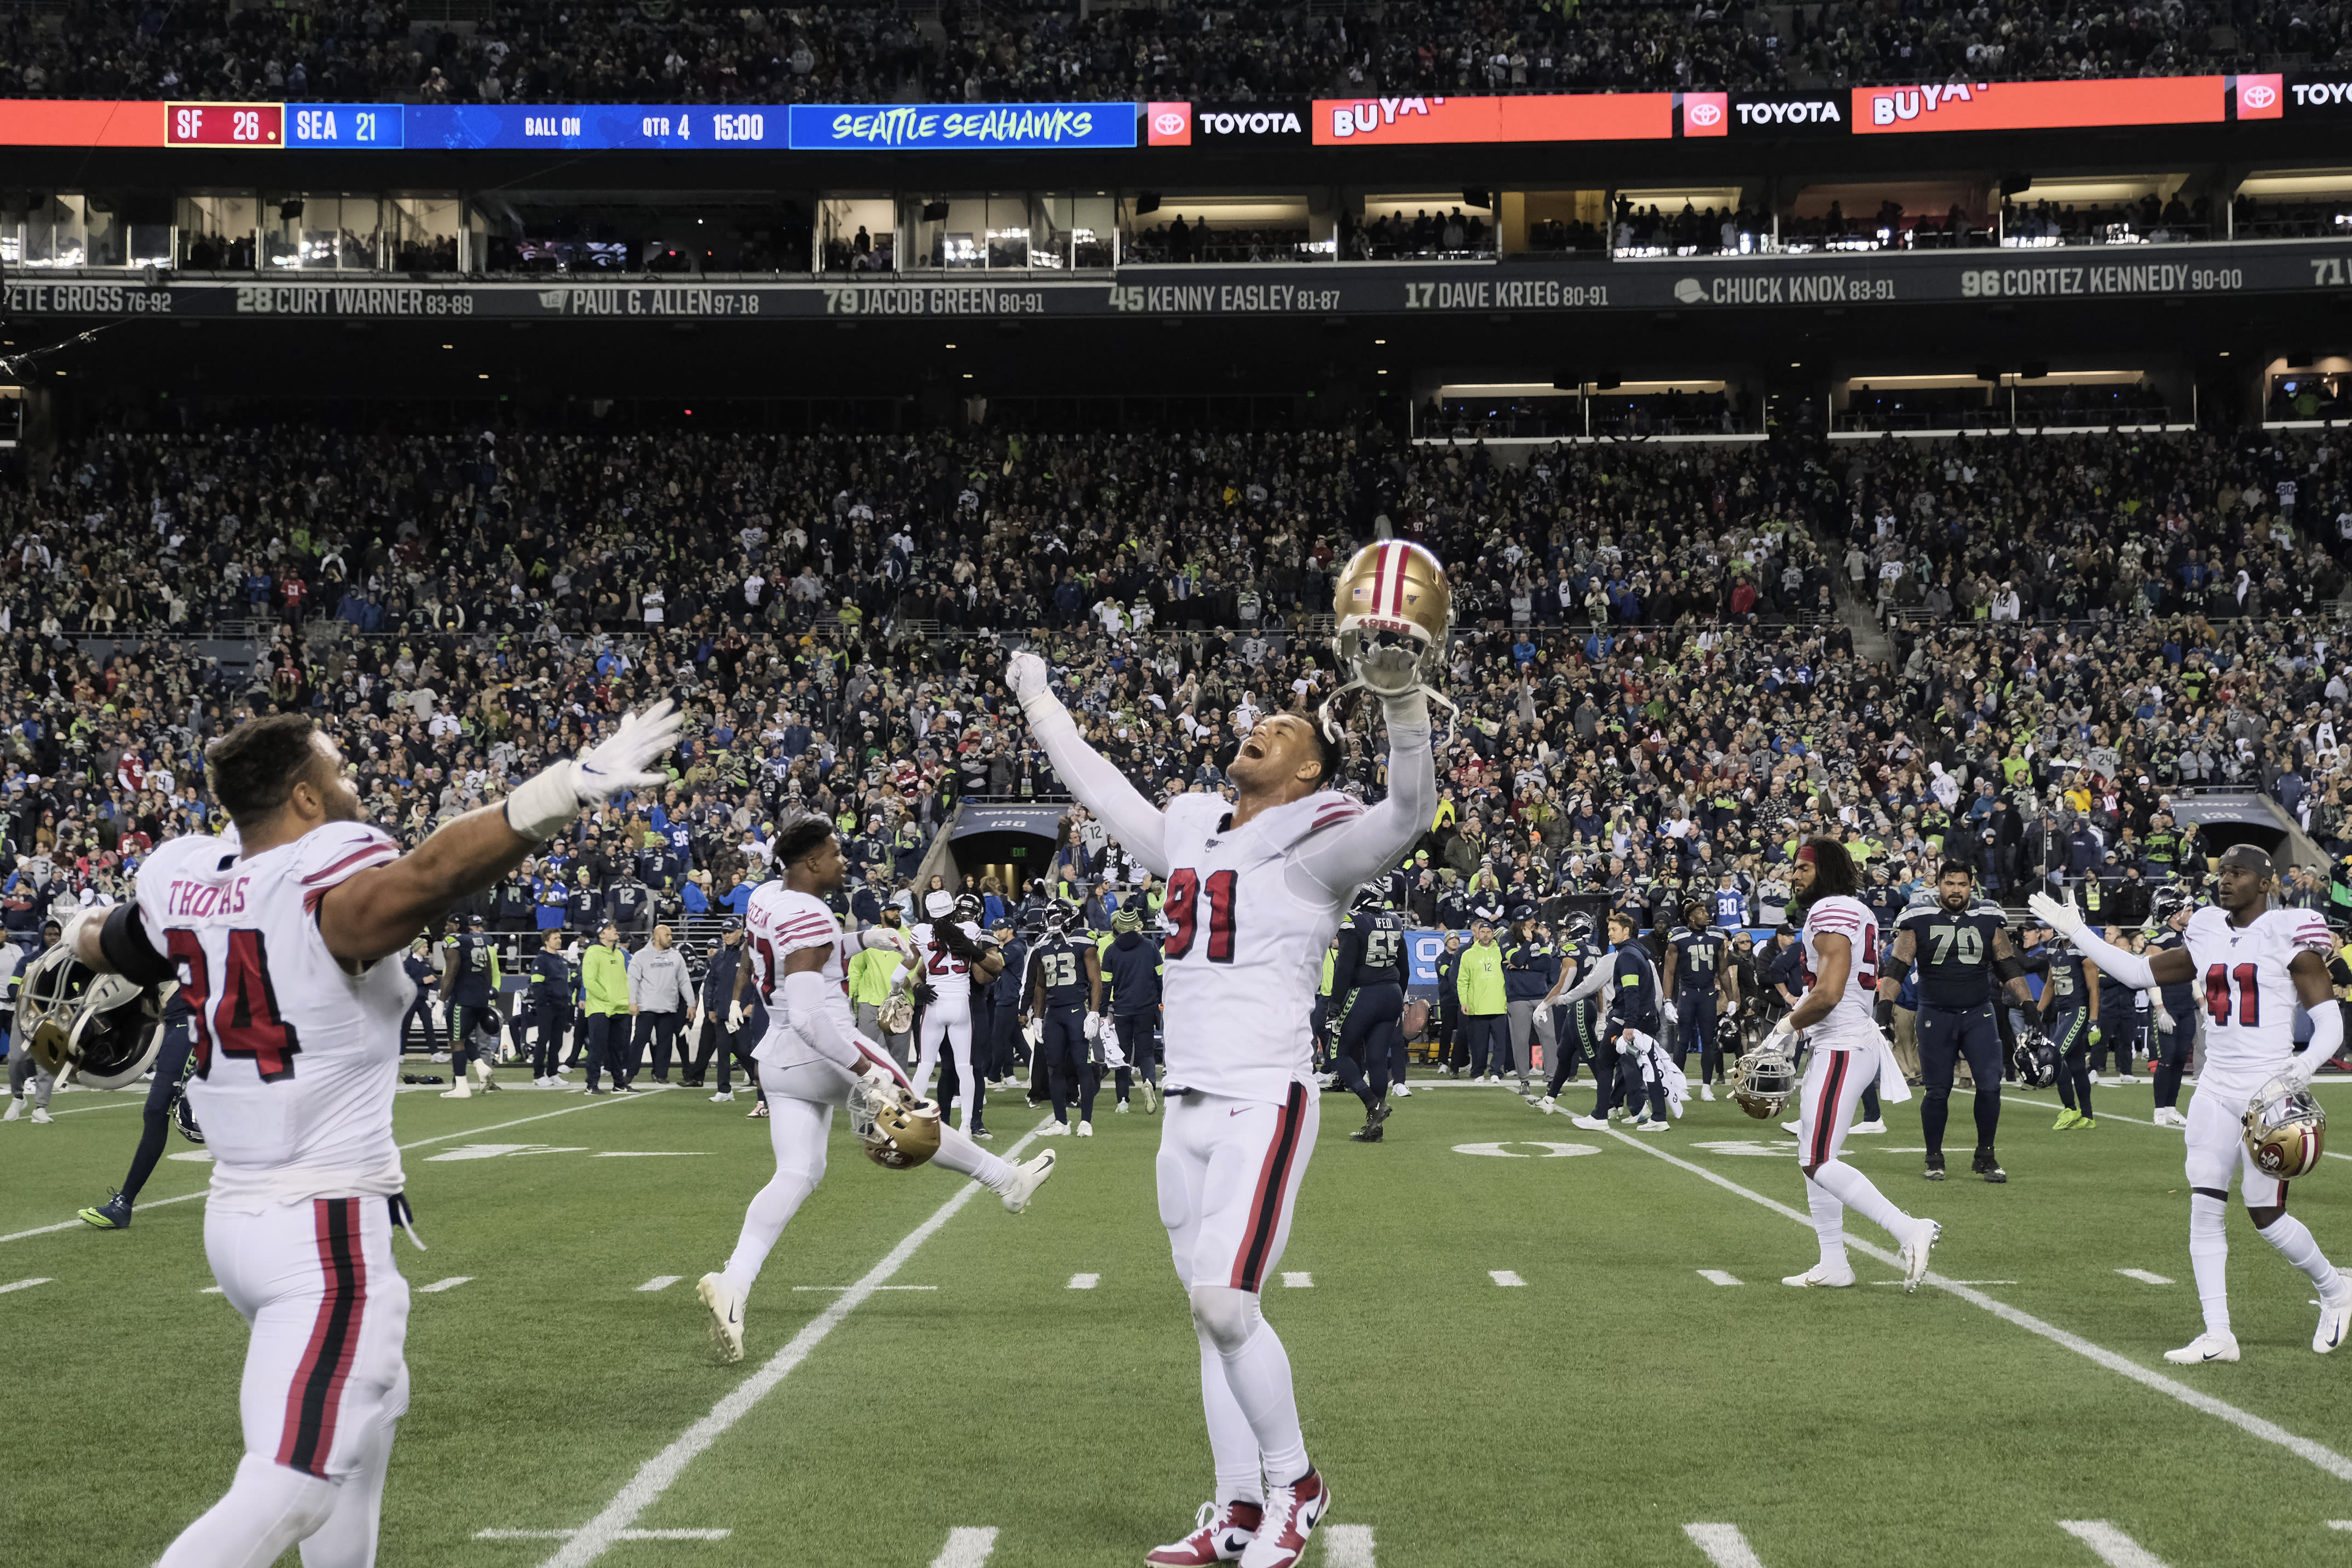 San Francisco 49ers' Arik Armstead (91) raises his arms in celebration as time expires in the team's victory over the Seattle Seahawks in an NFL football game, Sunday, Dec. 29, 2019, in Seattle. The 49ers won 26-21. (AP Photo/Stephen Brashear)